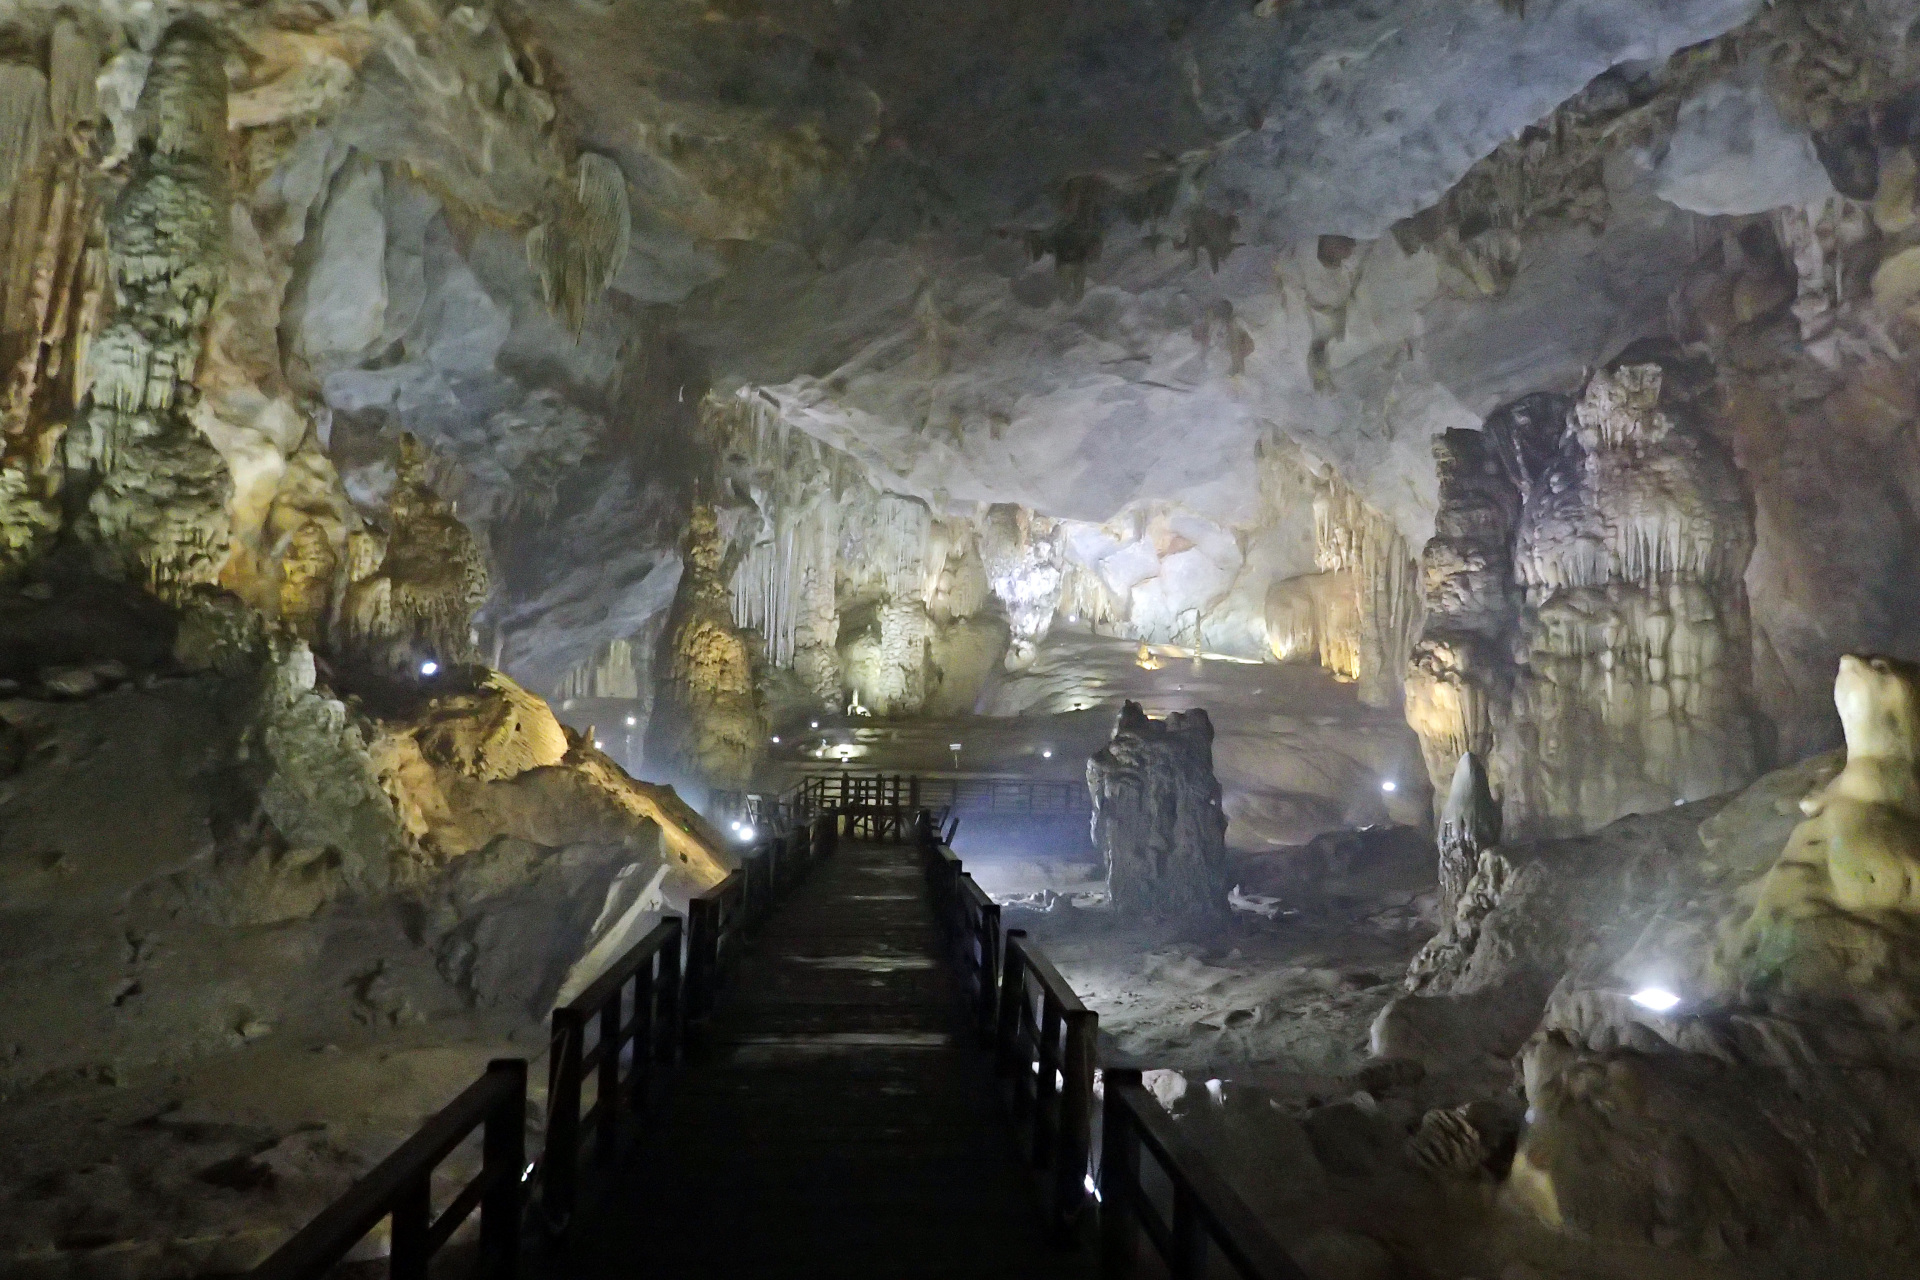 View from inside of paradise cave inside the park